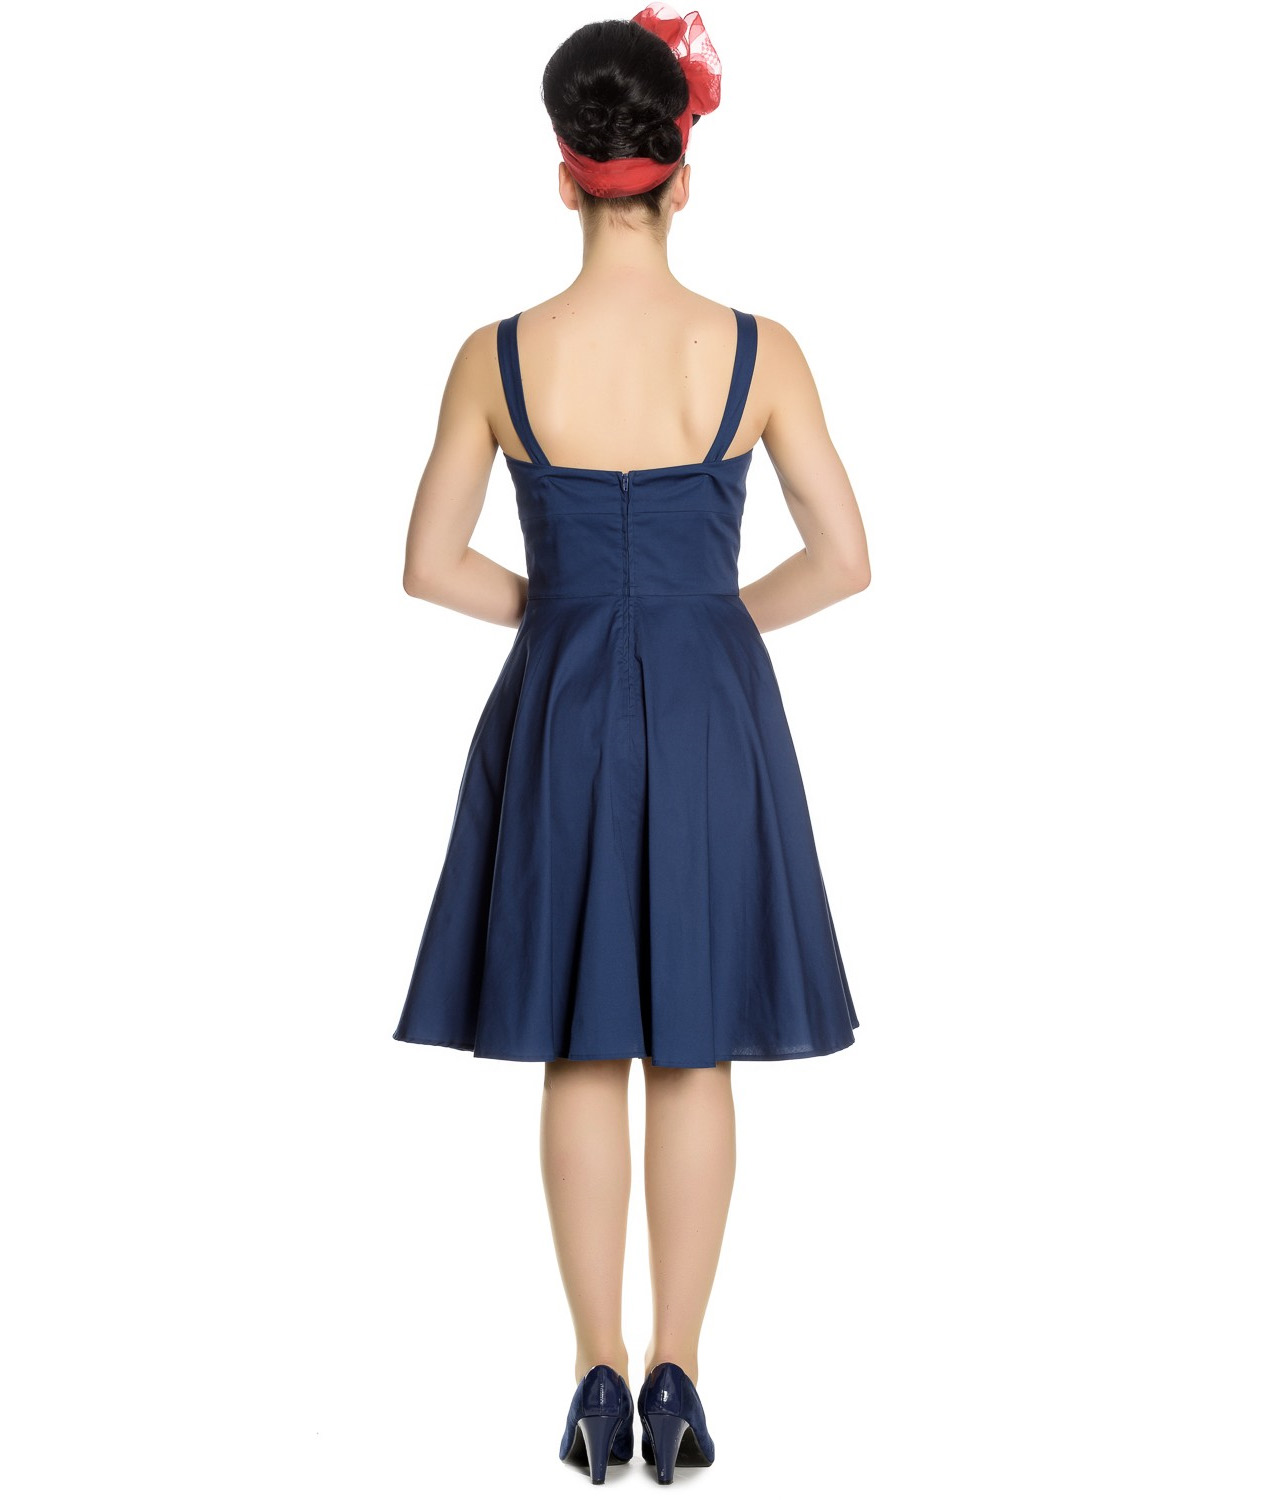 Hell-Bunny-Vintage-50s-Pin-Up-Dress-Navy-Blue-SELA-Nautical-Anchors-All-Sizes thumbnail 5